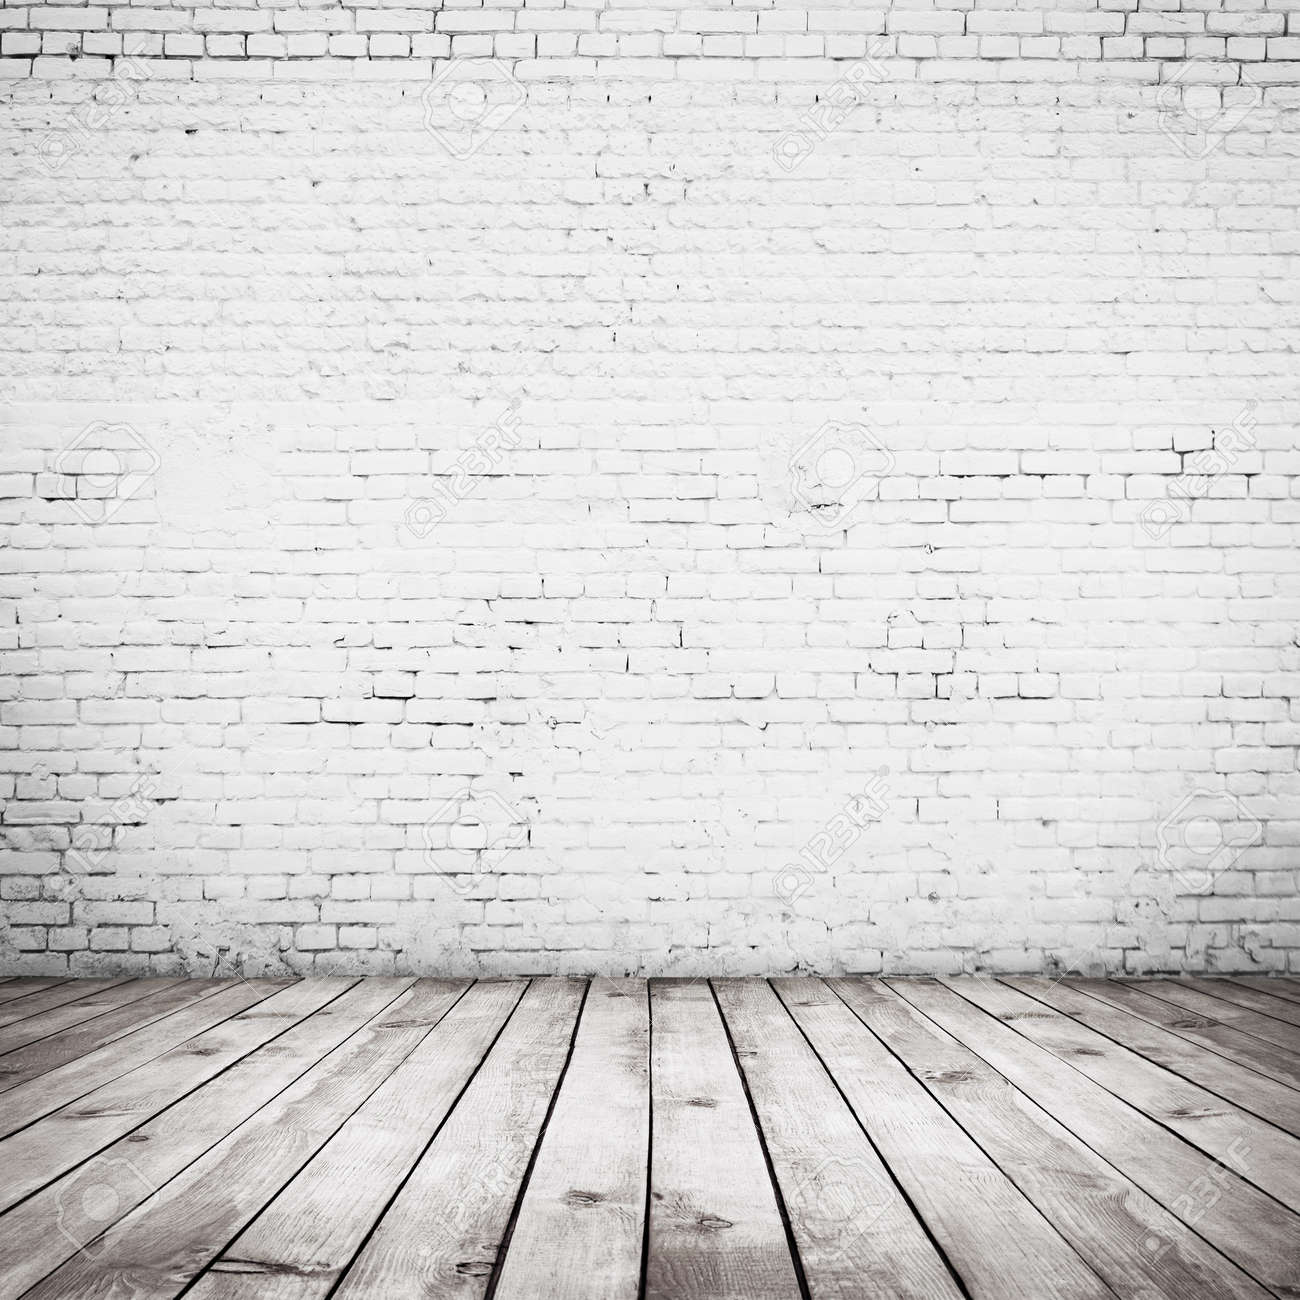 Room Interior Vintage With White Brick Wall And Wood Floor Background Stock  Photo   26568215